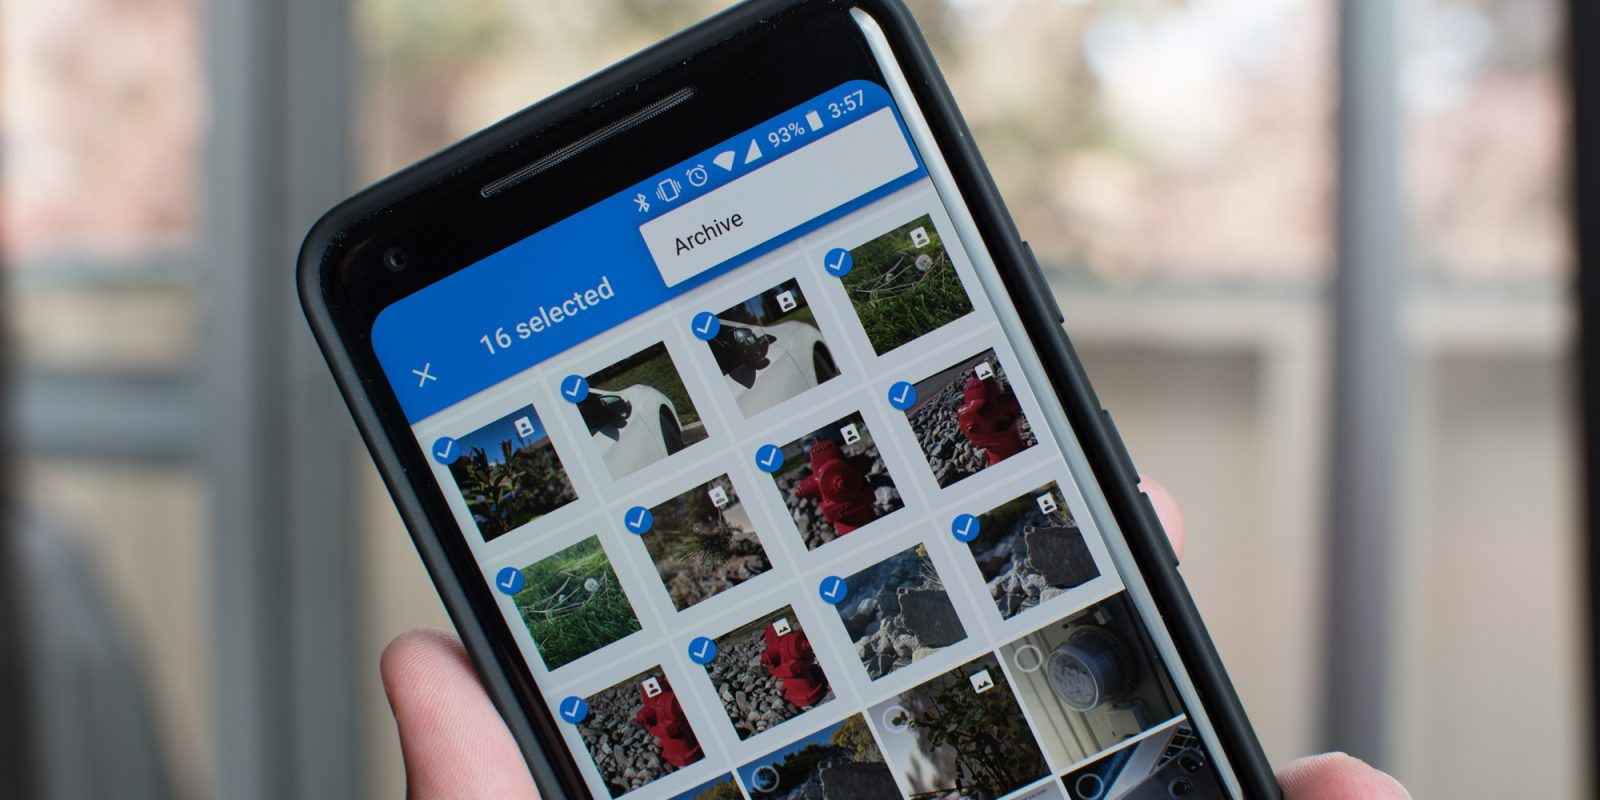 Feature request: Google Photos needs to let you select & save multiple  images to your phone [Gallery] - 9to5Google